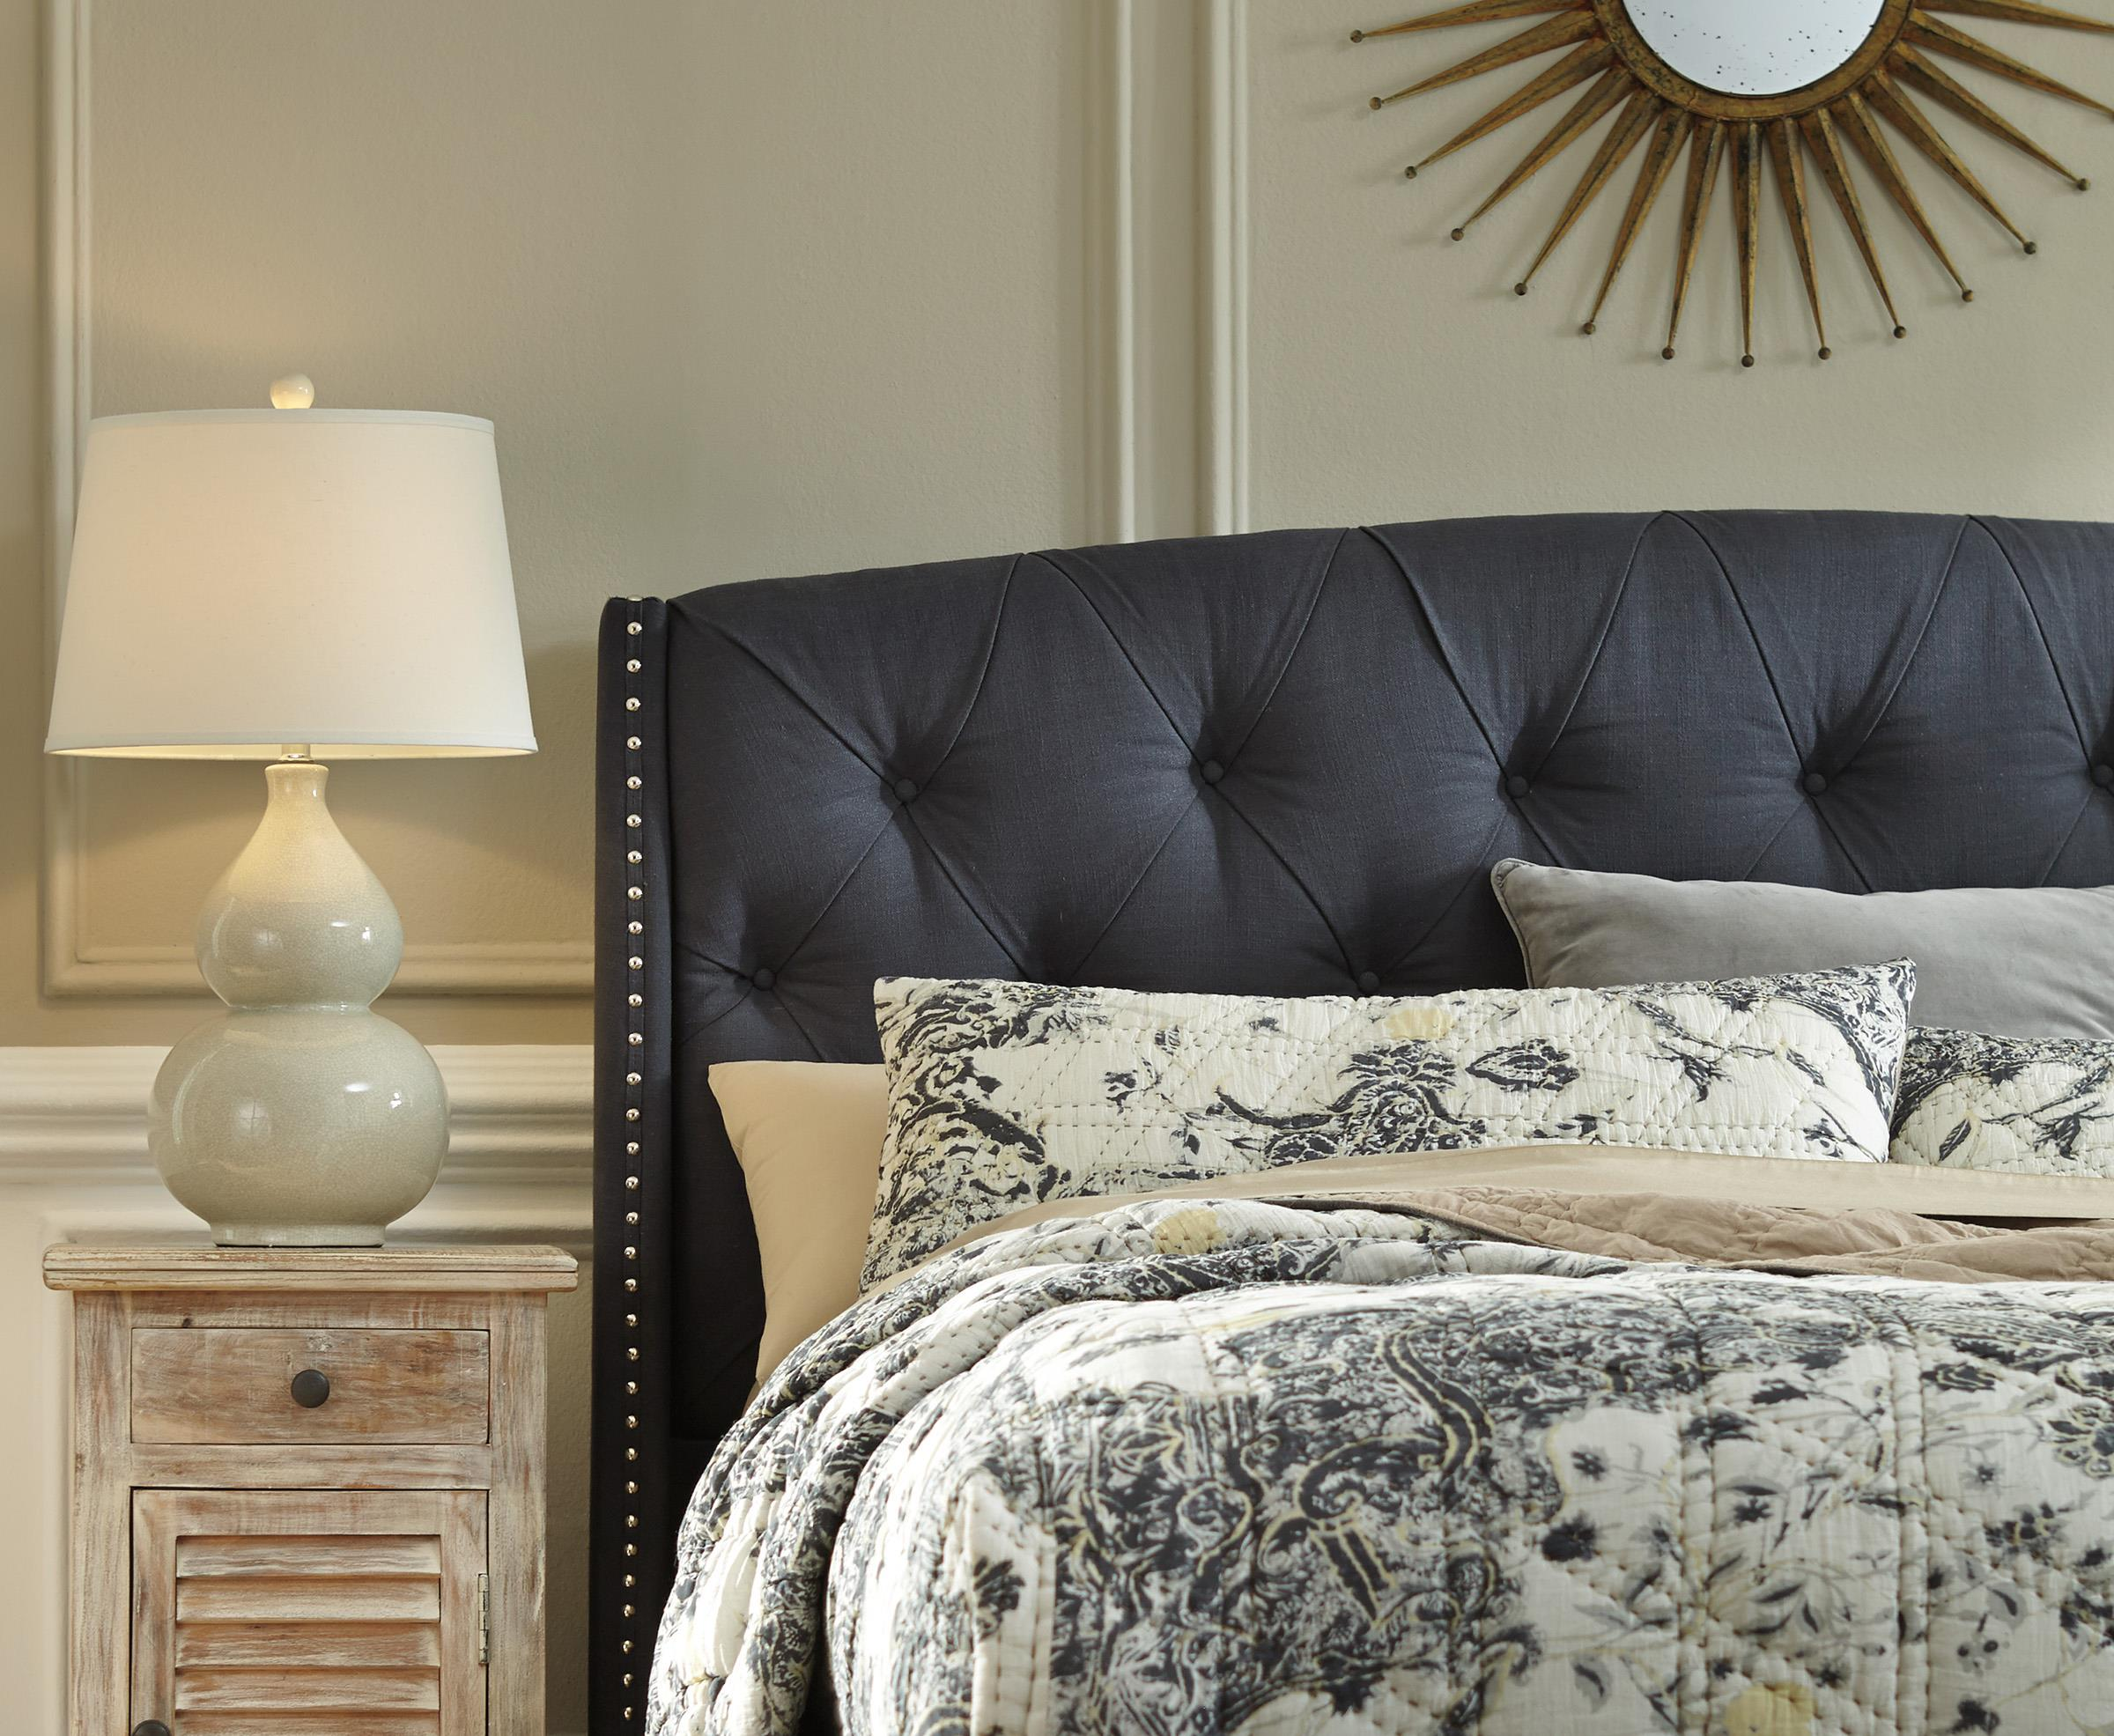 Queen upholstered headboard in dark gray with tufting and Grey tufted headboard